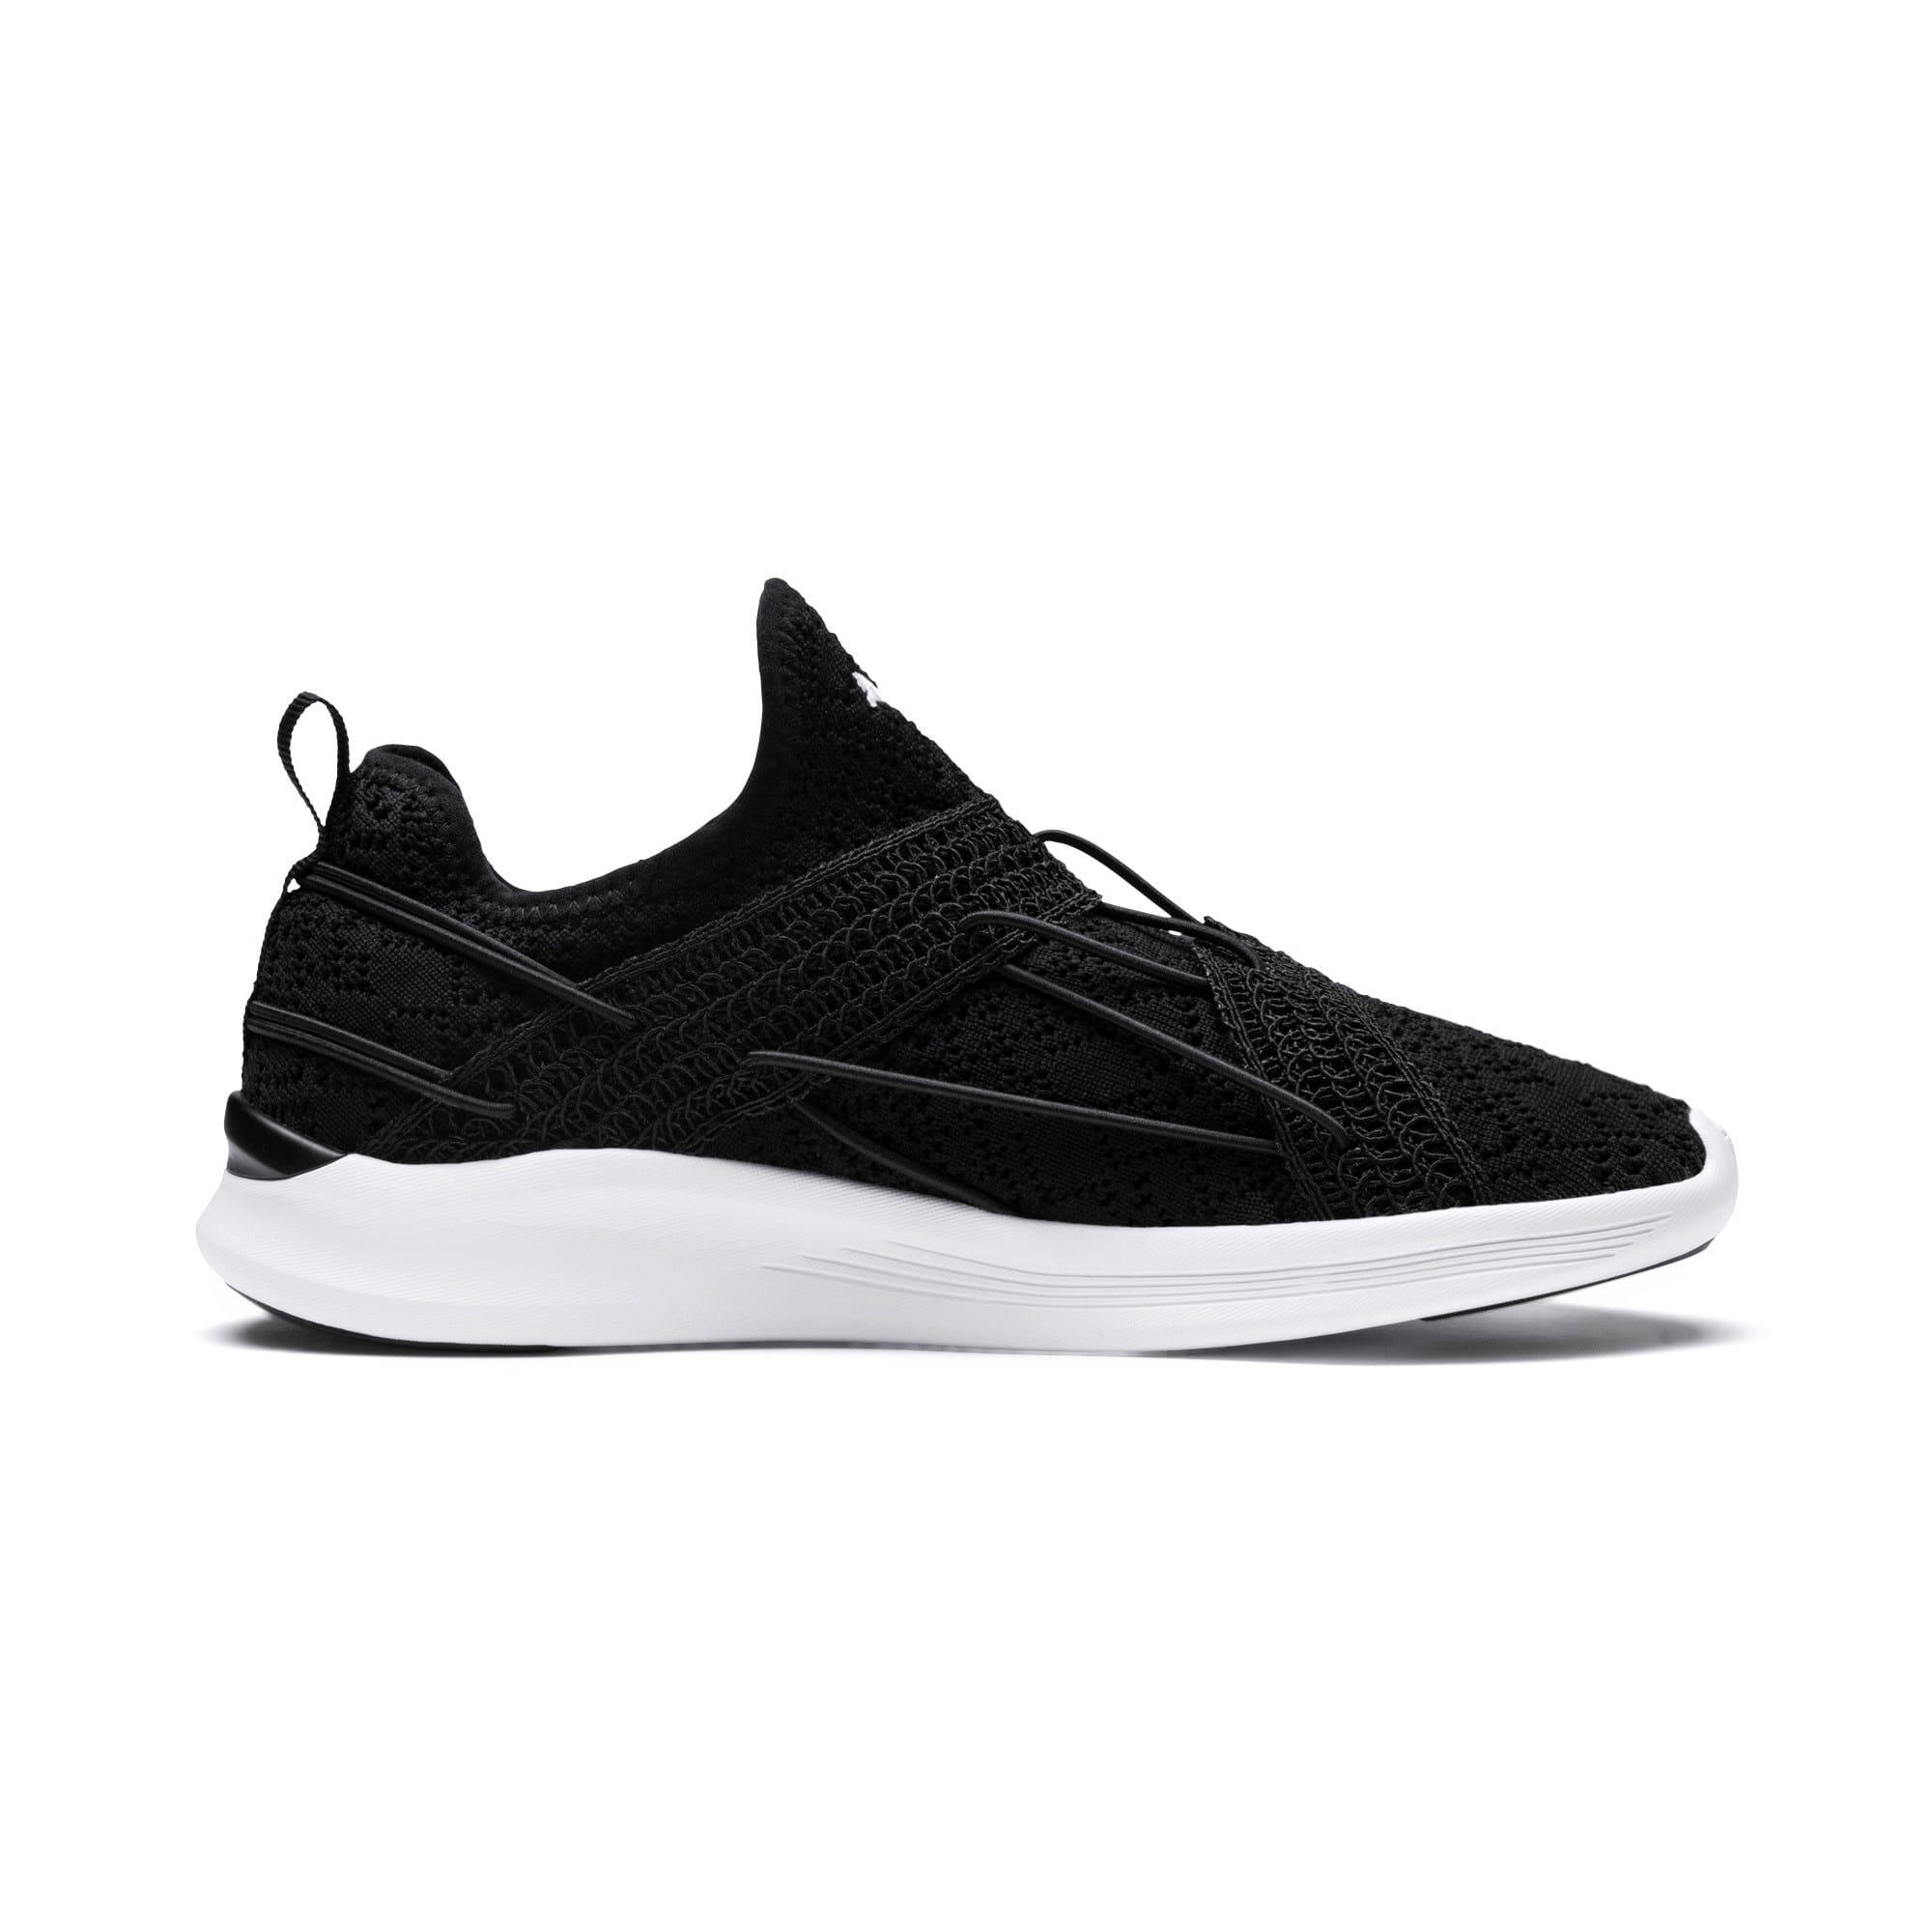 Thumbnail 5 of IGNITE Flash Sensua Wn s Puma Black-Puma, Puma Black-Puma White, medium-IND